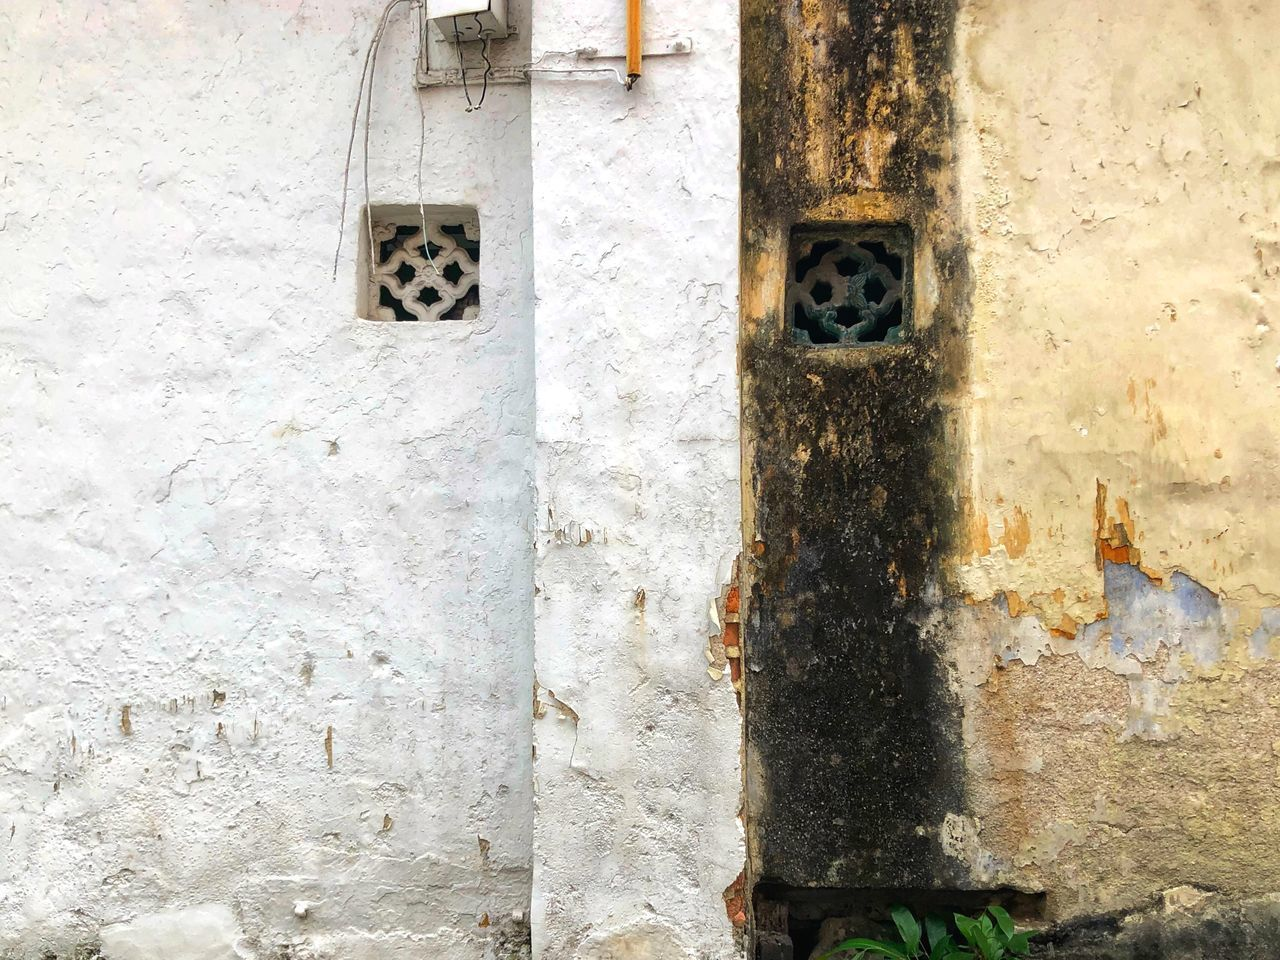 wall - building feature, built structure, architecture, weathered, no people, day, building exterior, old, wall, textured, close-up, hole, outdoors, metal, decline, deterioration, peeling off, rusty, pattern, animal themes, stone wall, concrete